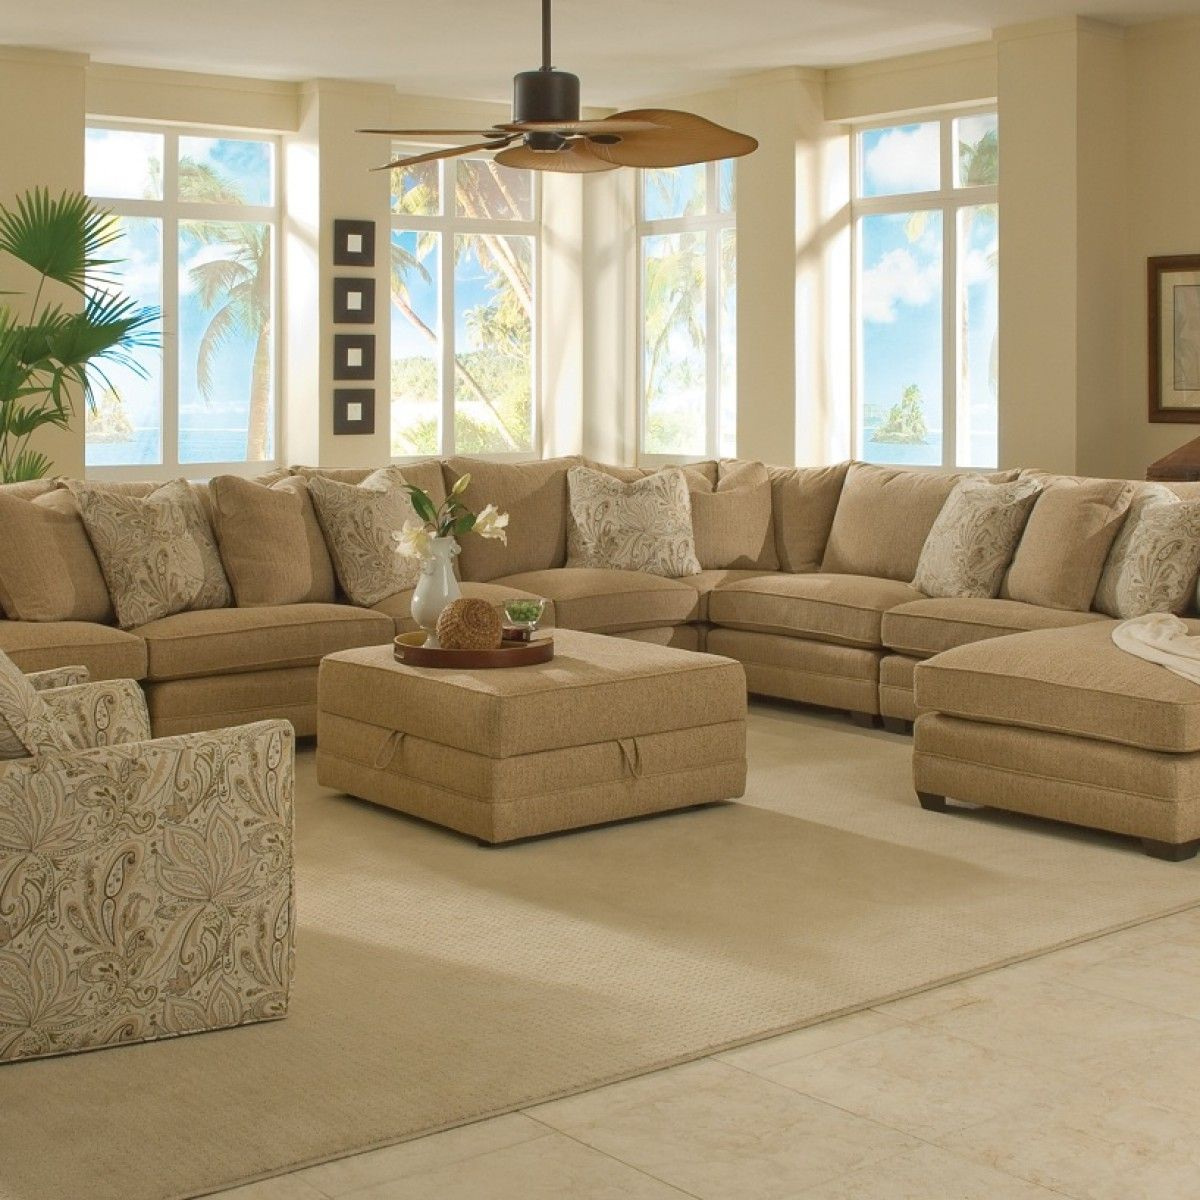 Magnificent large sectional sofas family room for Large couch small living room